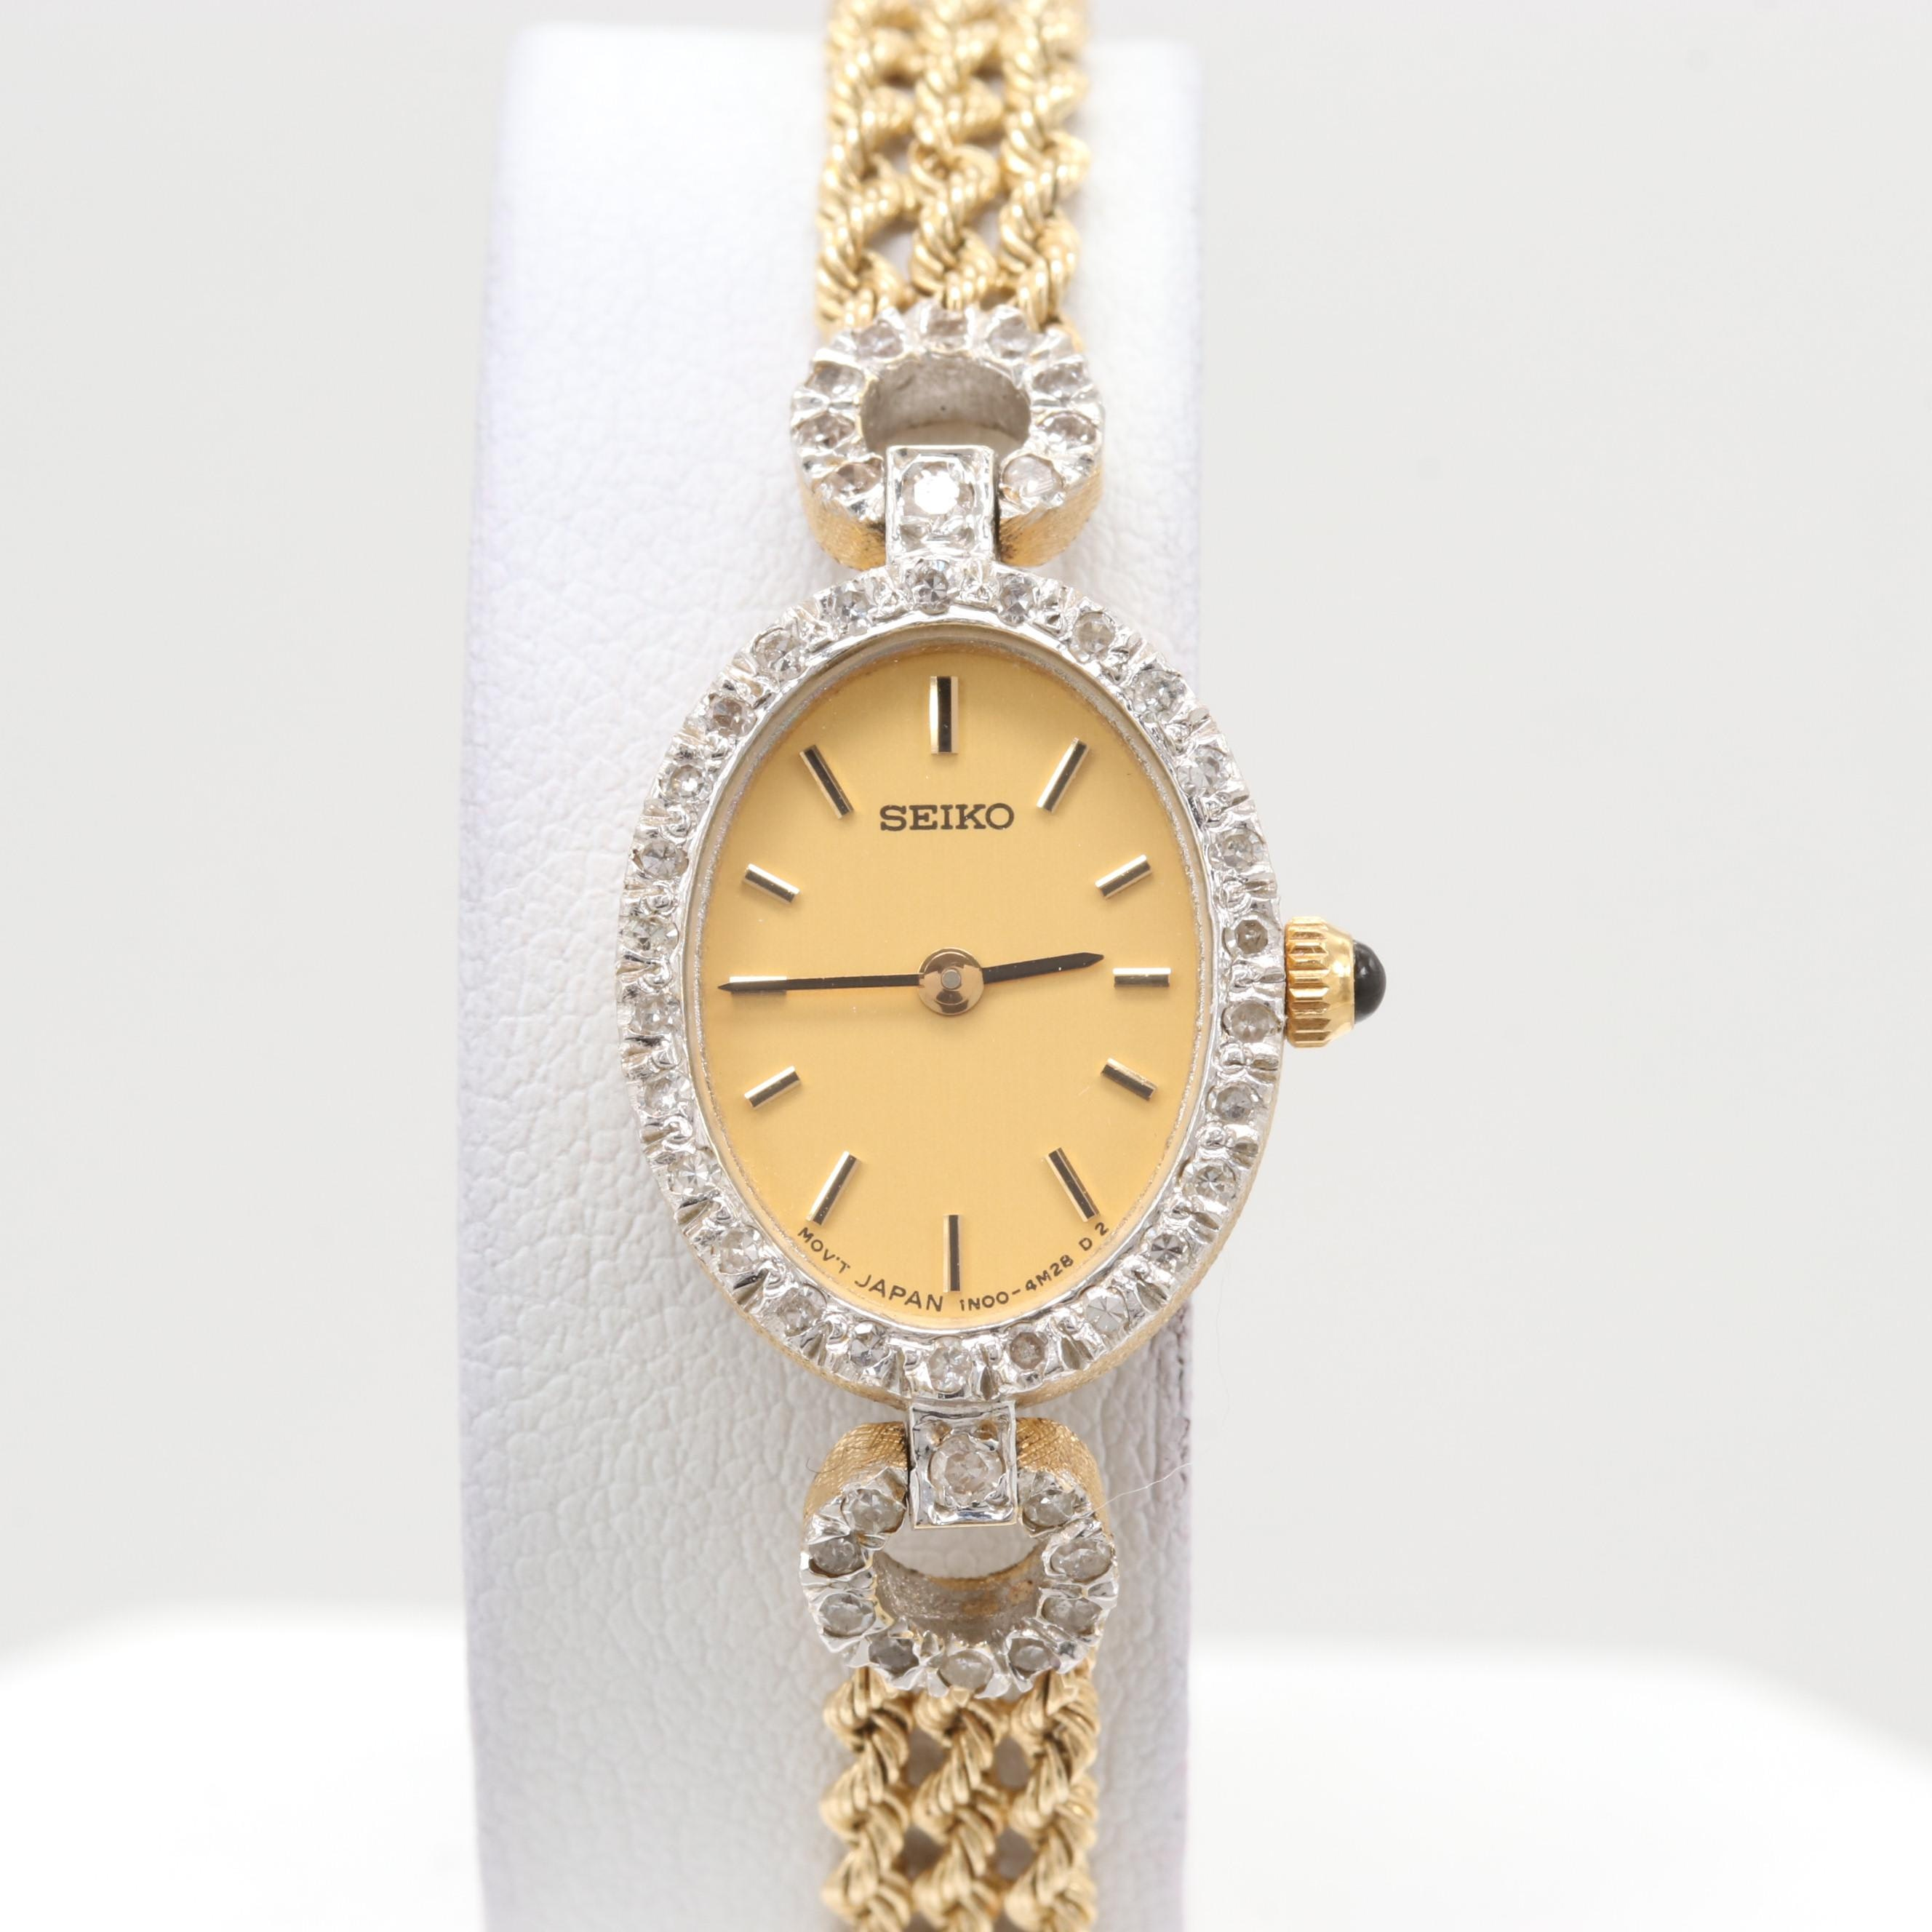 Seiko 14K Yellow Gold Quartz Wristwatch With Diamond Lugs and Bezel